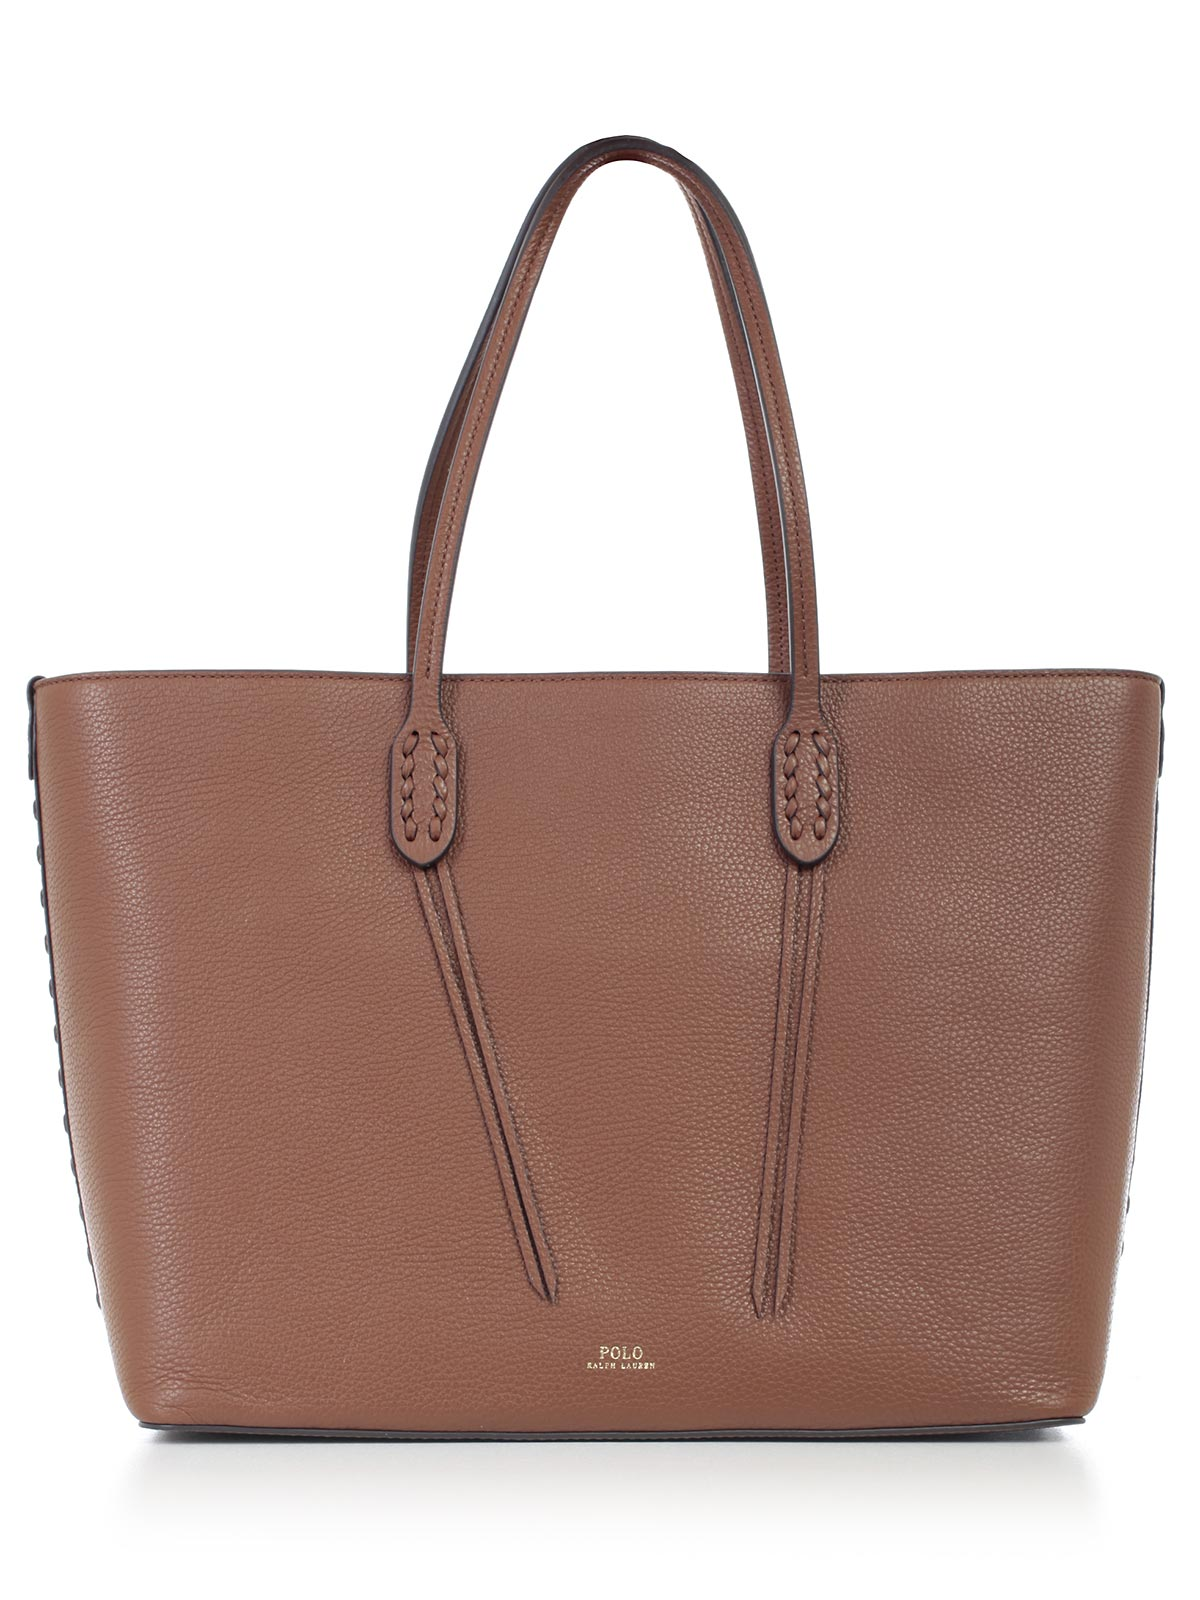 Picture of POLO RALPH LAUREN Totes